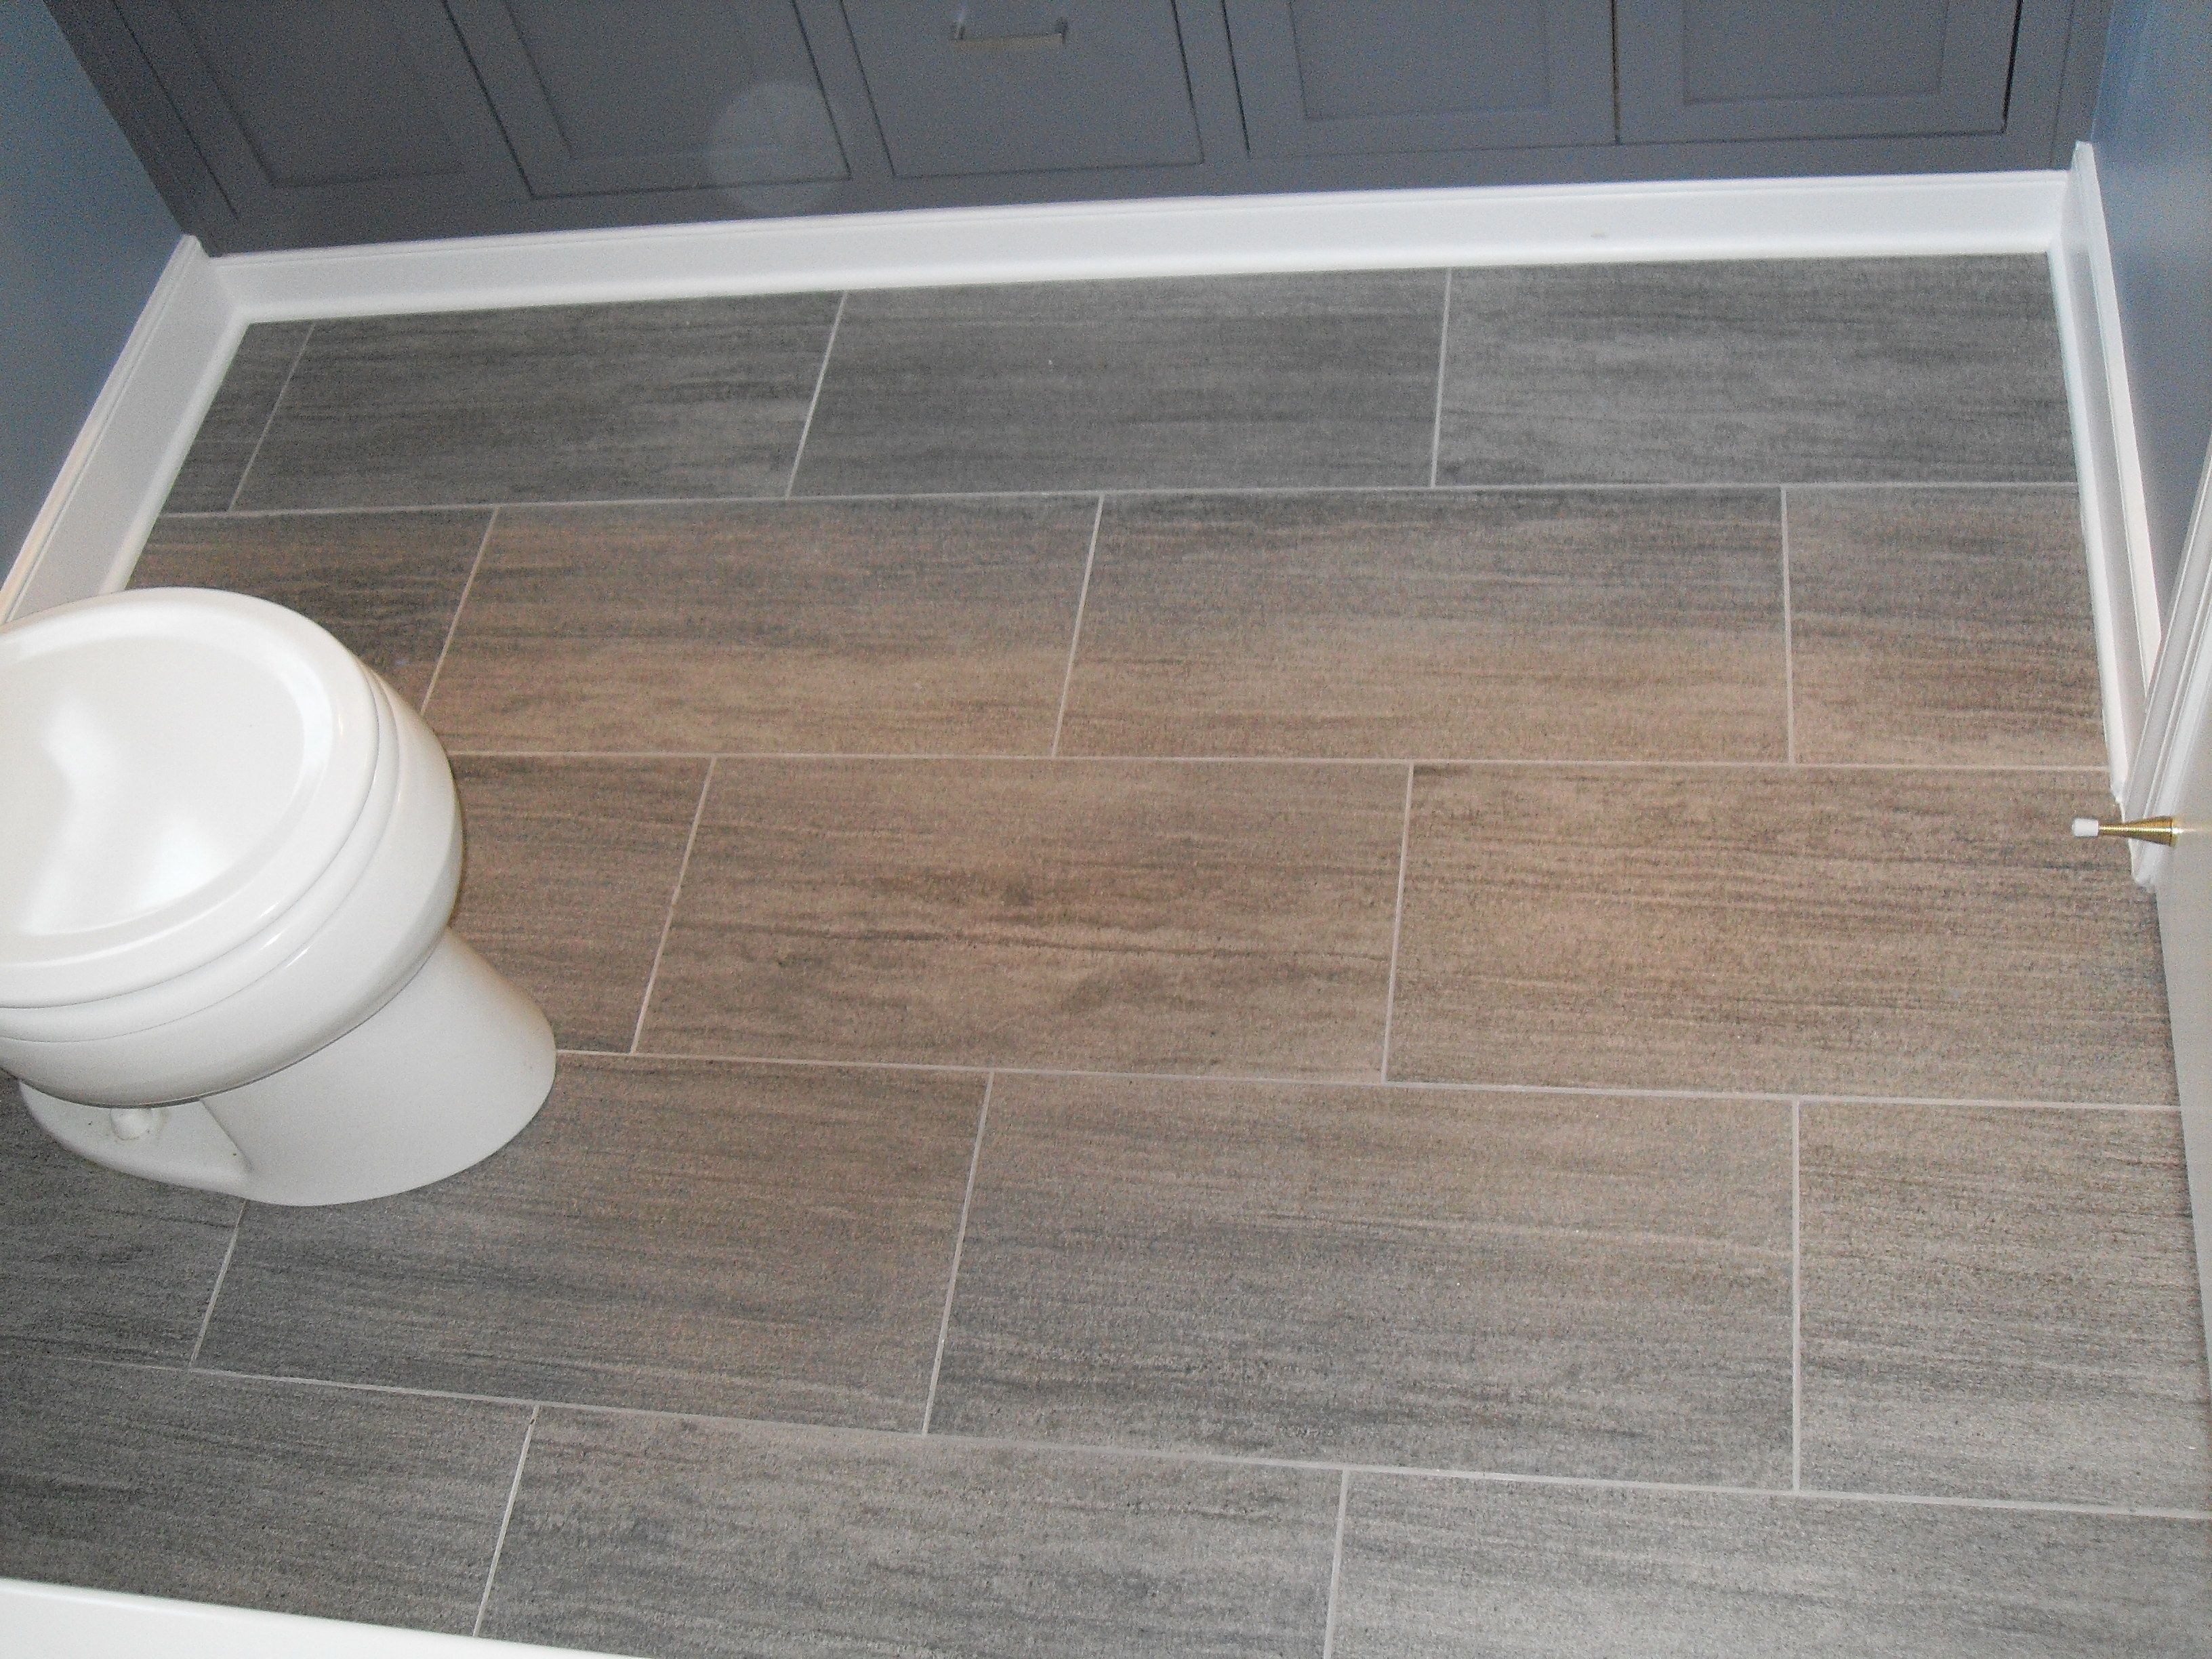 Bathroom laminate flooring nottingham - Laminate tiles for bathroom walls ...